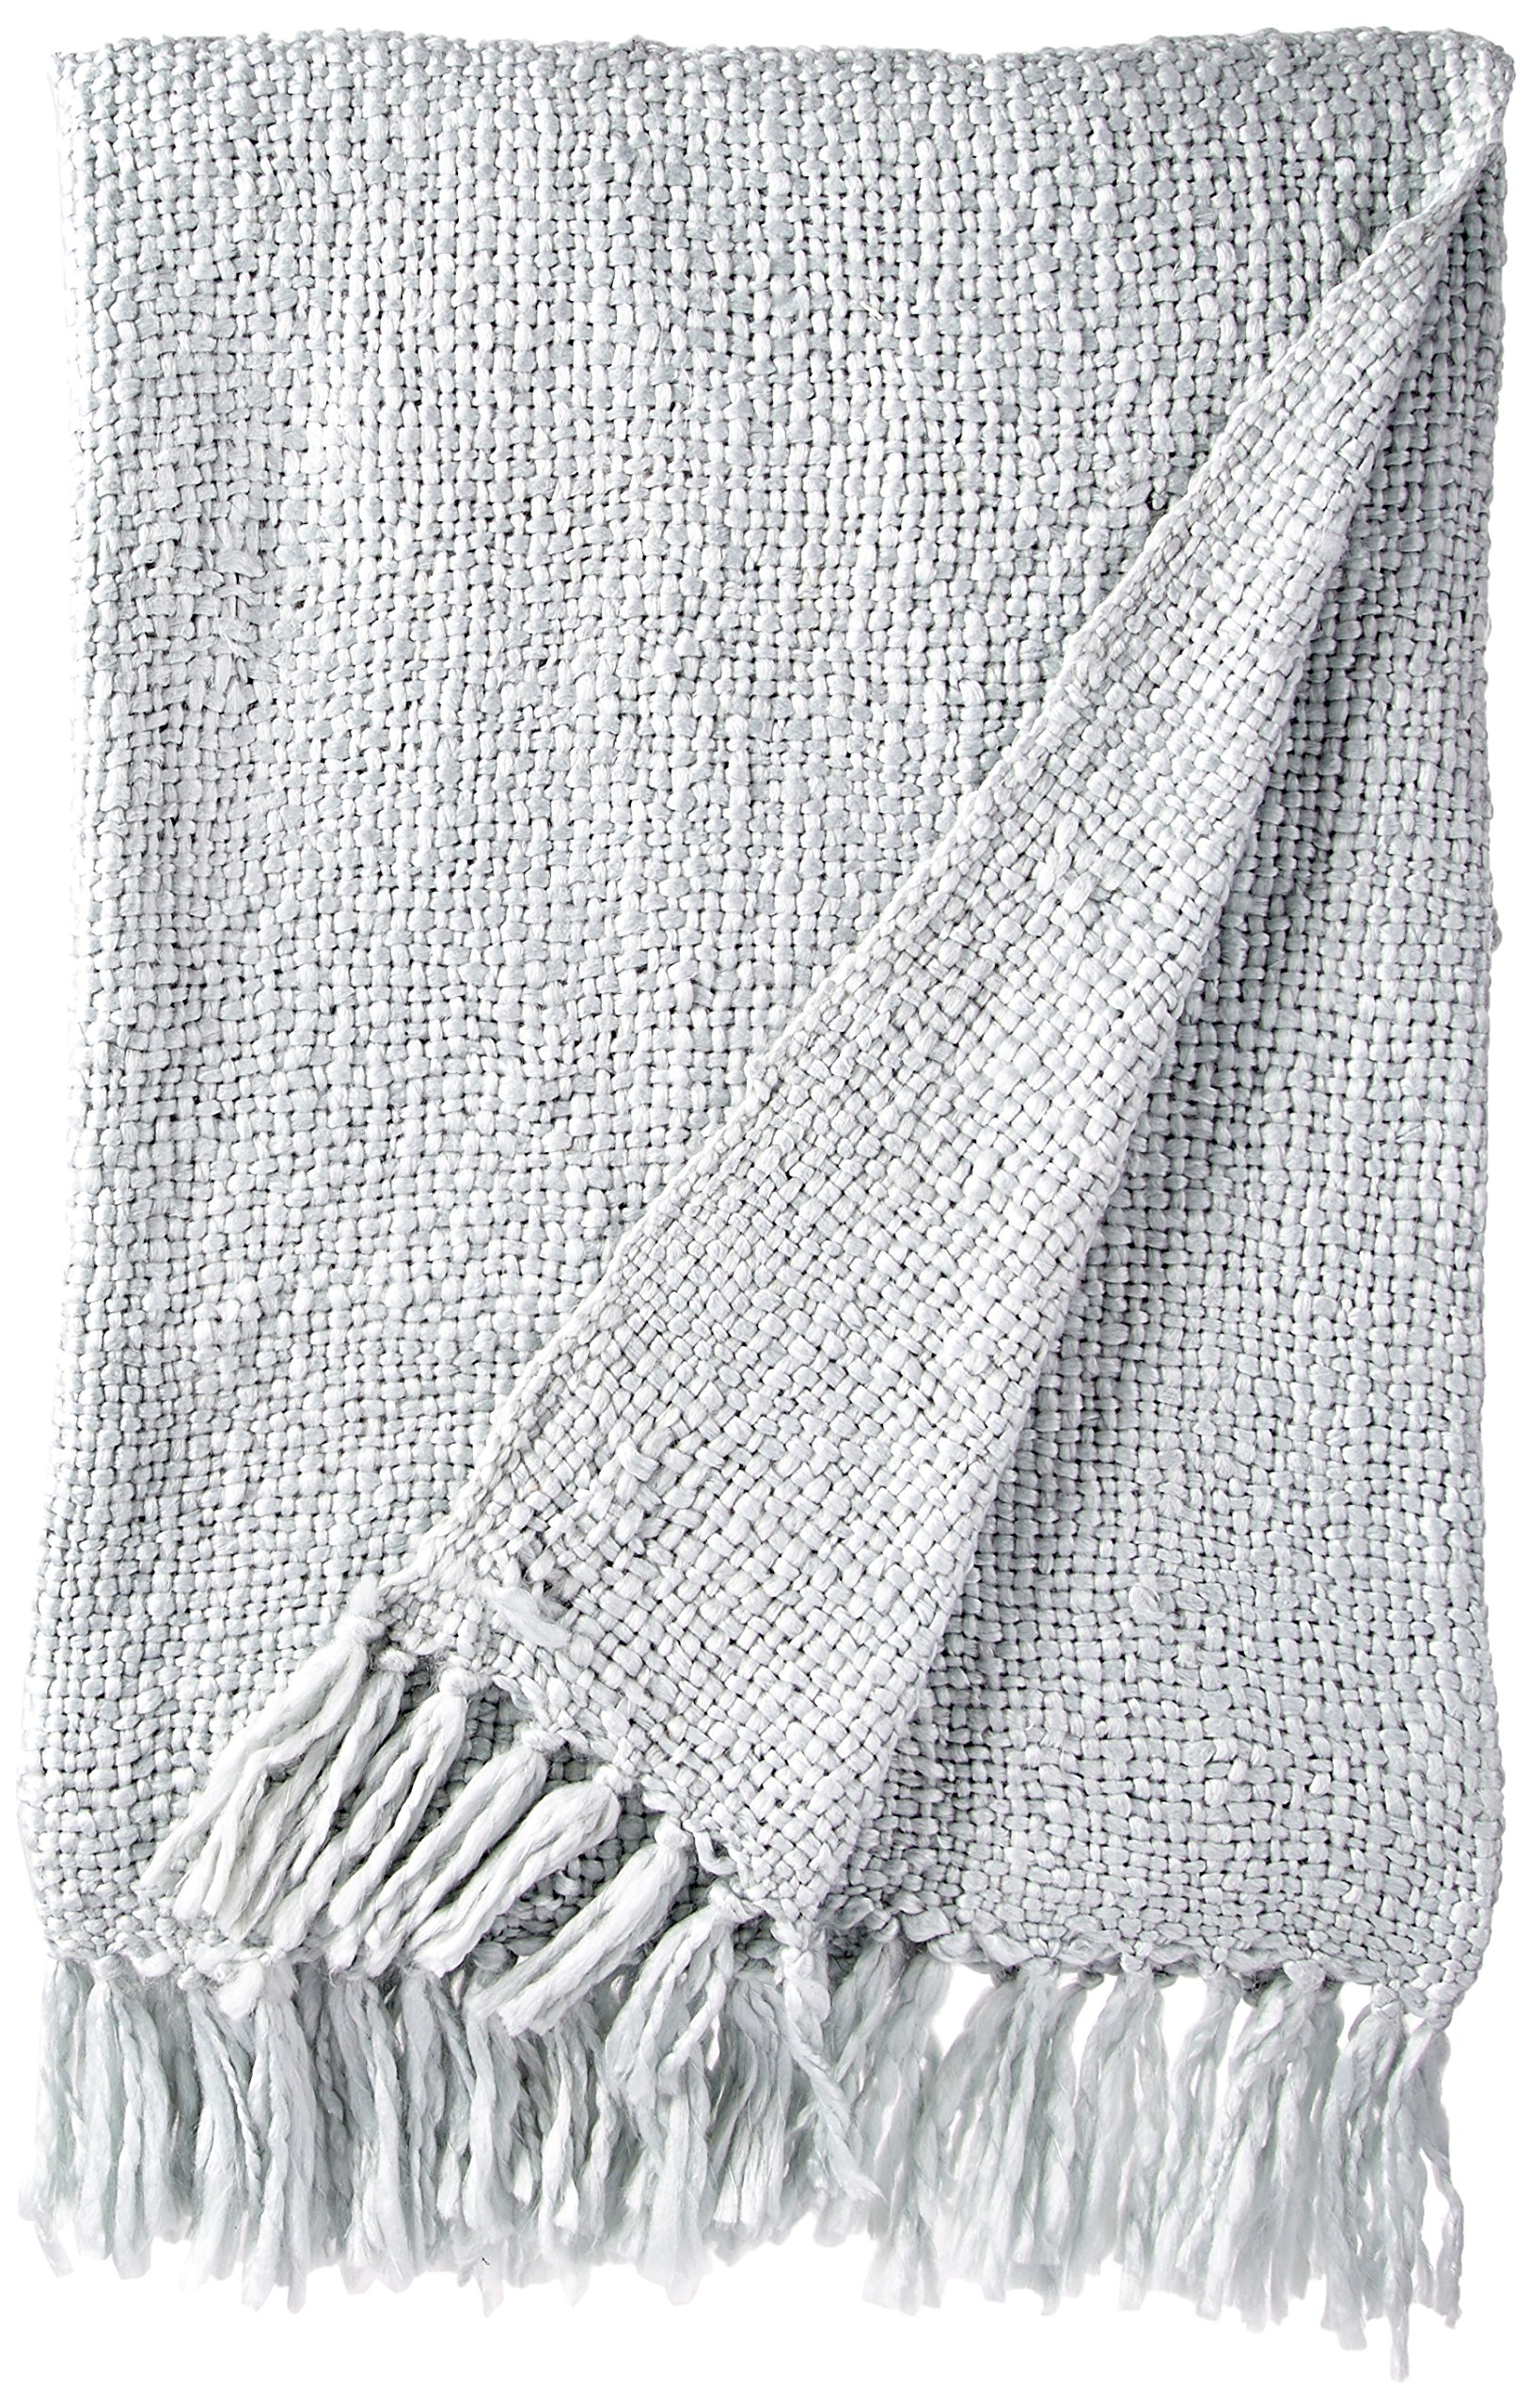 Rizzy Home TH-0113 Throw, 50 by 60-Inch, Spa Blue